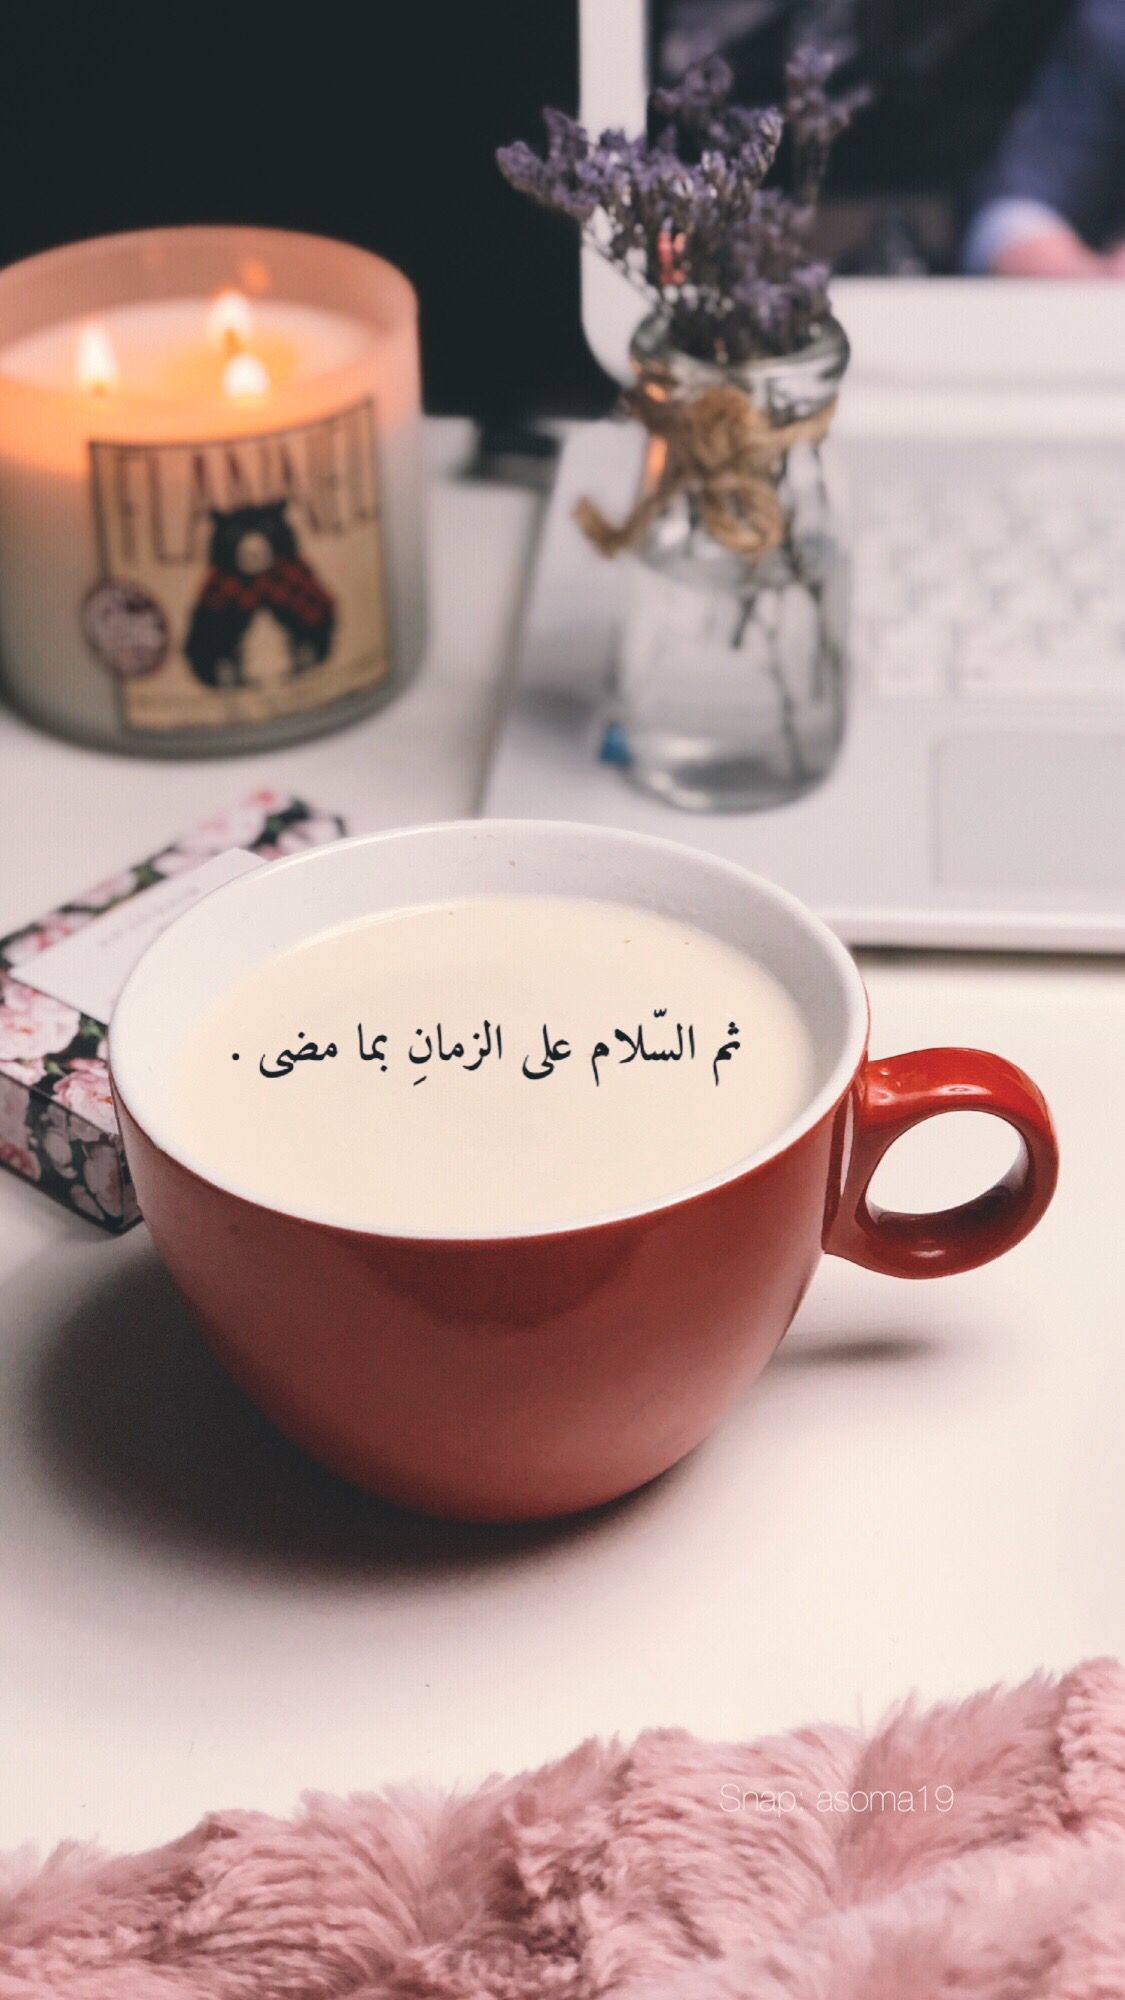 Pin By Jolly On يوميات Coffee Quotes Coffee Drink Recipes Beautiful Arabic Words